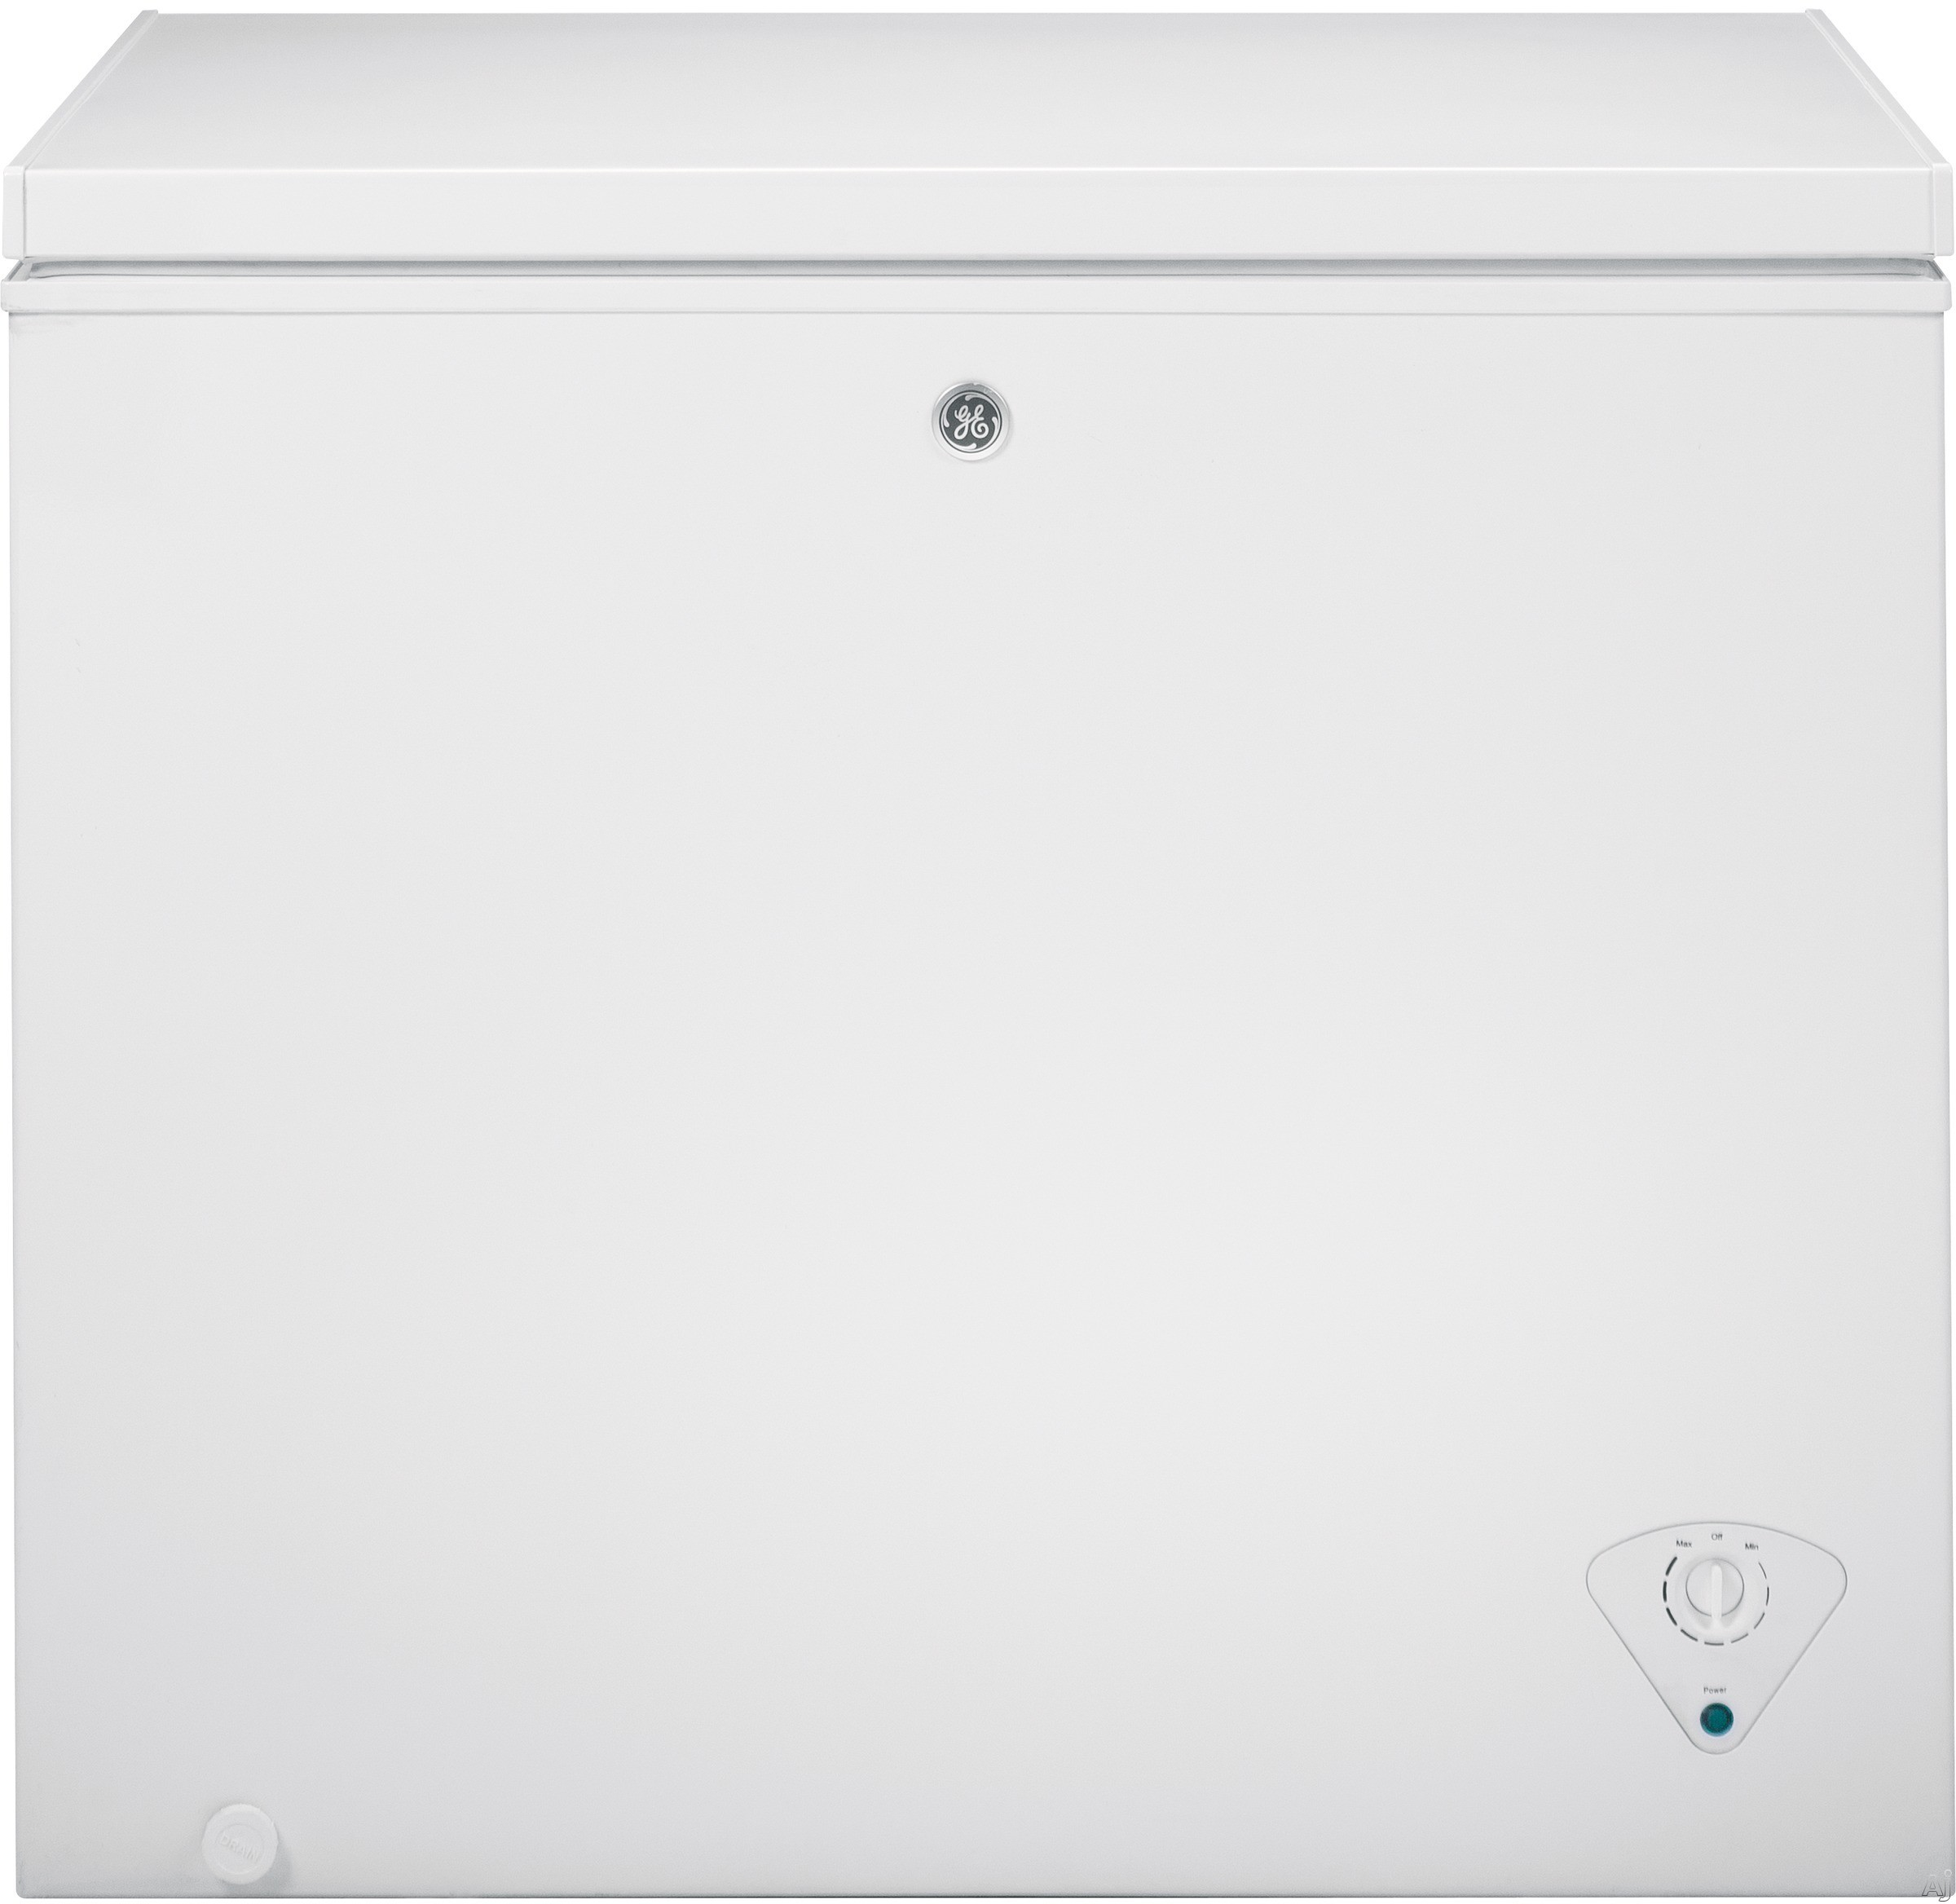 "Image of ""GE FCM7SKWW 7.0 cu. ft. Manual Defrost Chest Freezer with 2 Lift-Out Sliding Storage Baskets, Power """"On"""" Light, Recessed Handles and Adjustable Temperature Control"""